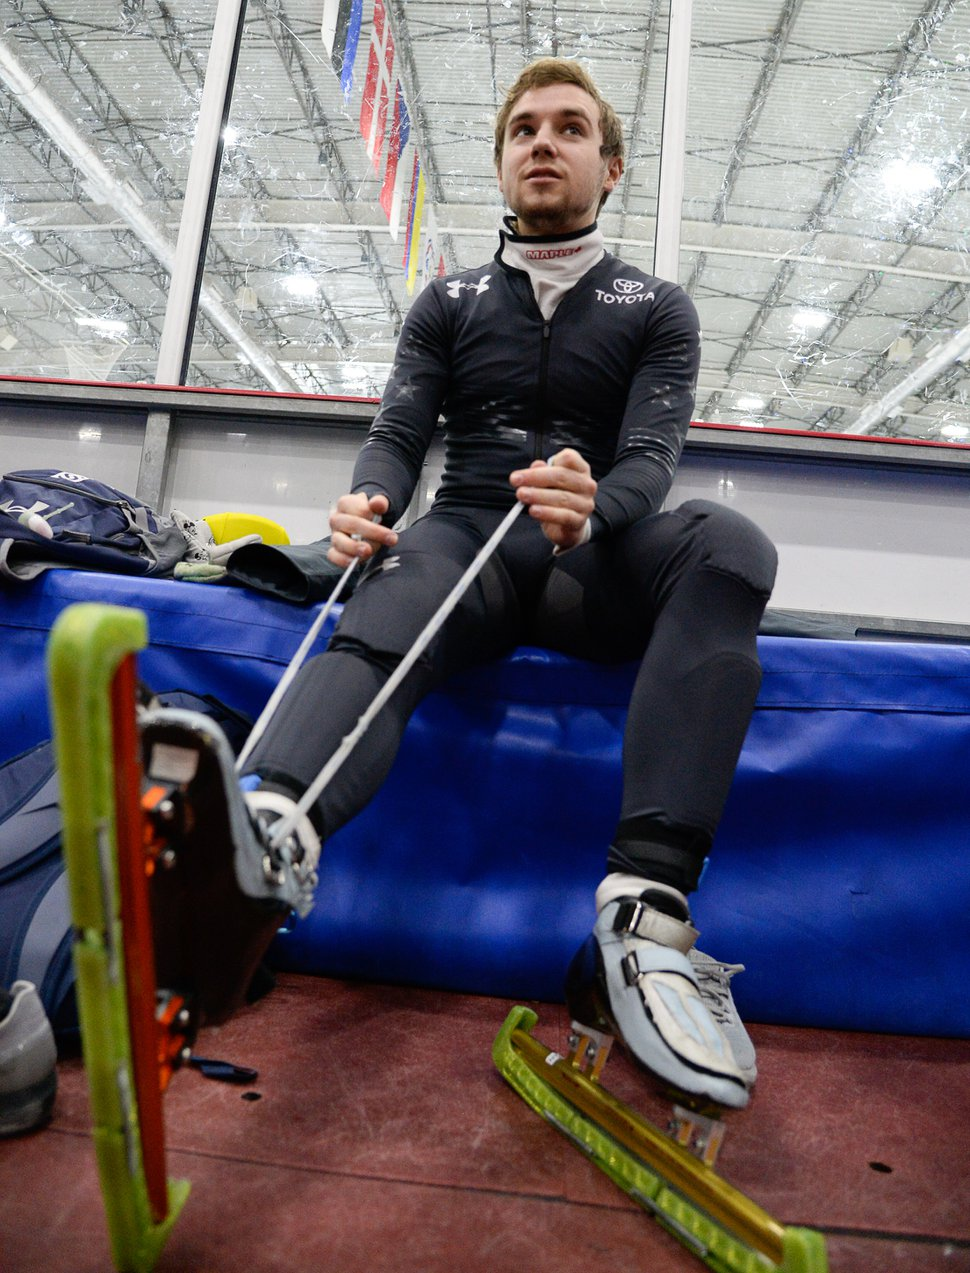 (Francisco Kjolseth | The Salt Lake Tribune) Ryan Pivirotto prepares for a semifinals mixed relay race as part of the U.S. Short Track Speedskating championships on Friday, Jan. 3, 2020, at the Utah Olympic Oval in Kearns.